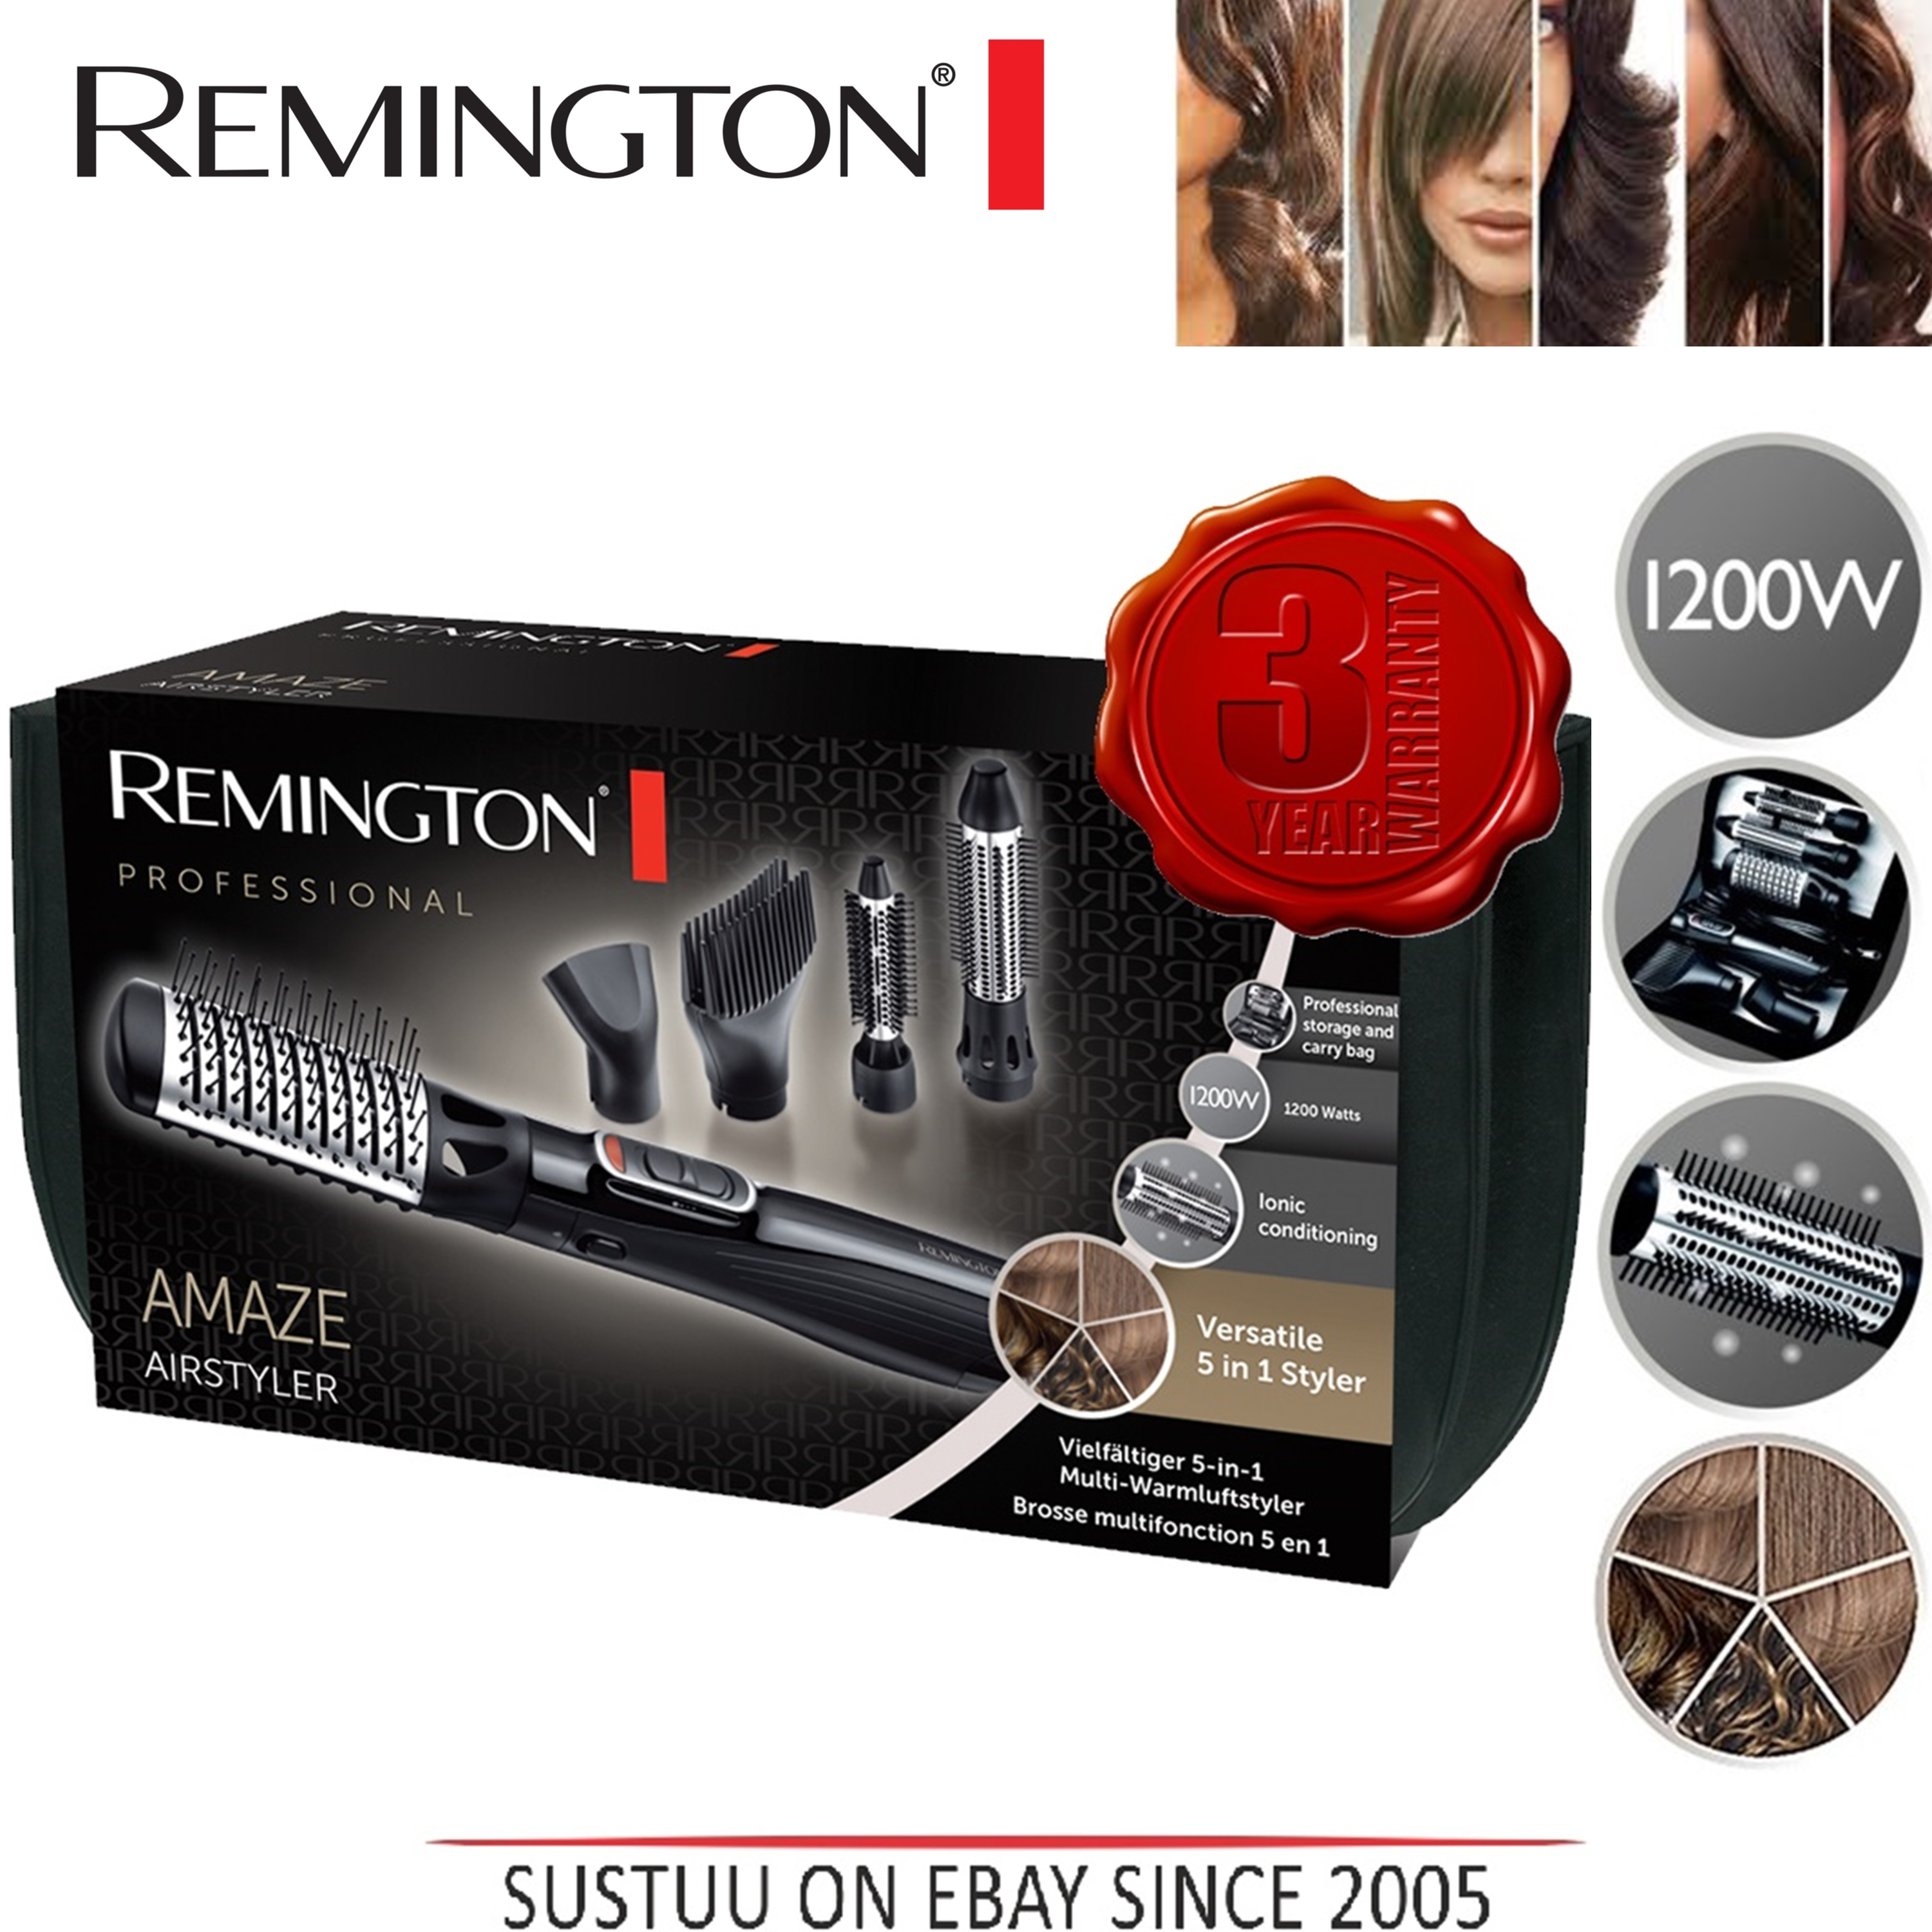 Remington Amaze Smooth & Volume 5 in 1 Hot Air Hair Brush Airstyler AS1220 New